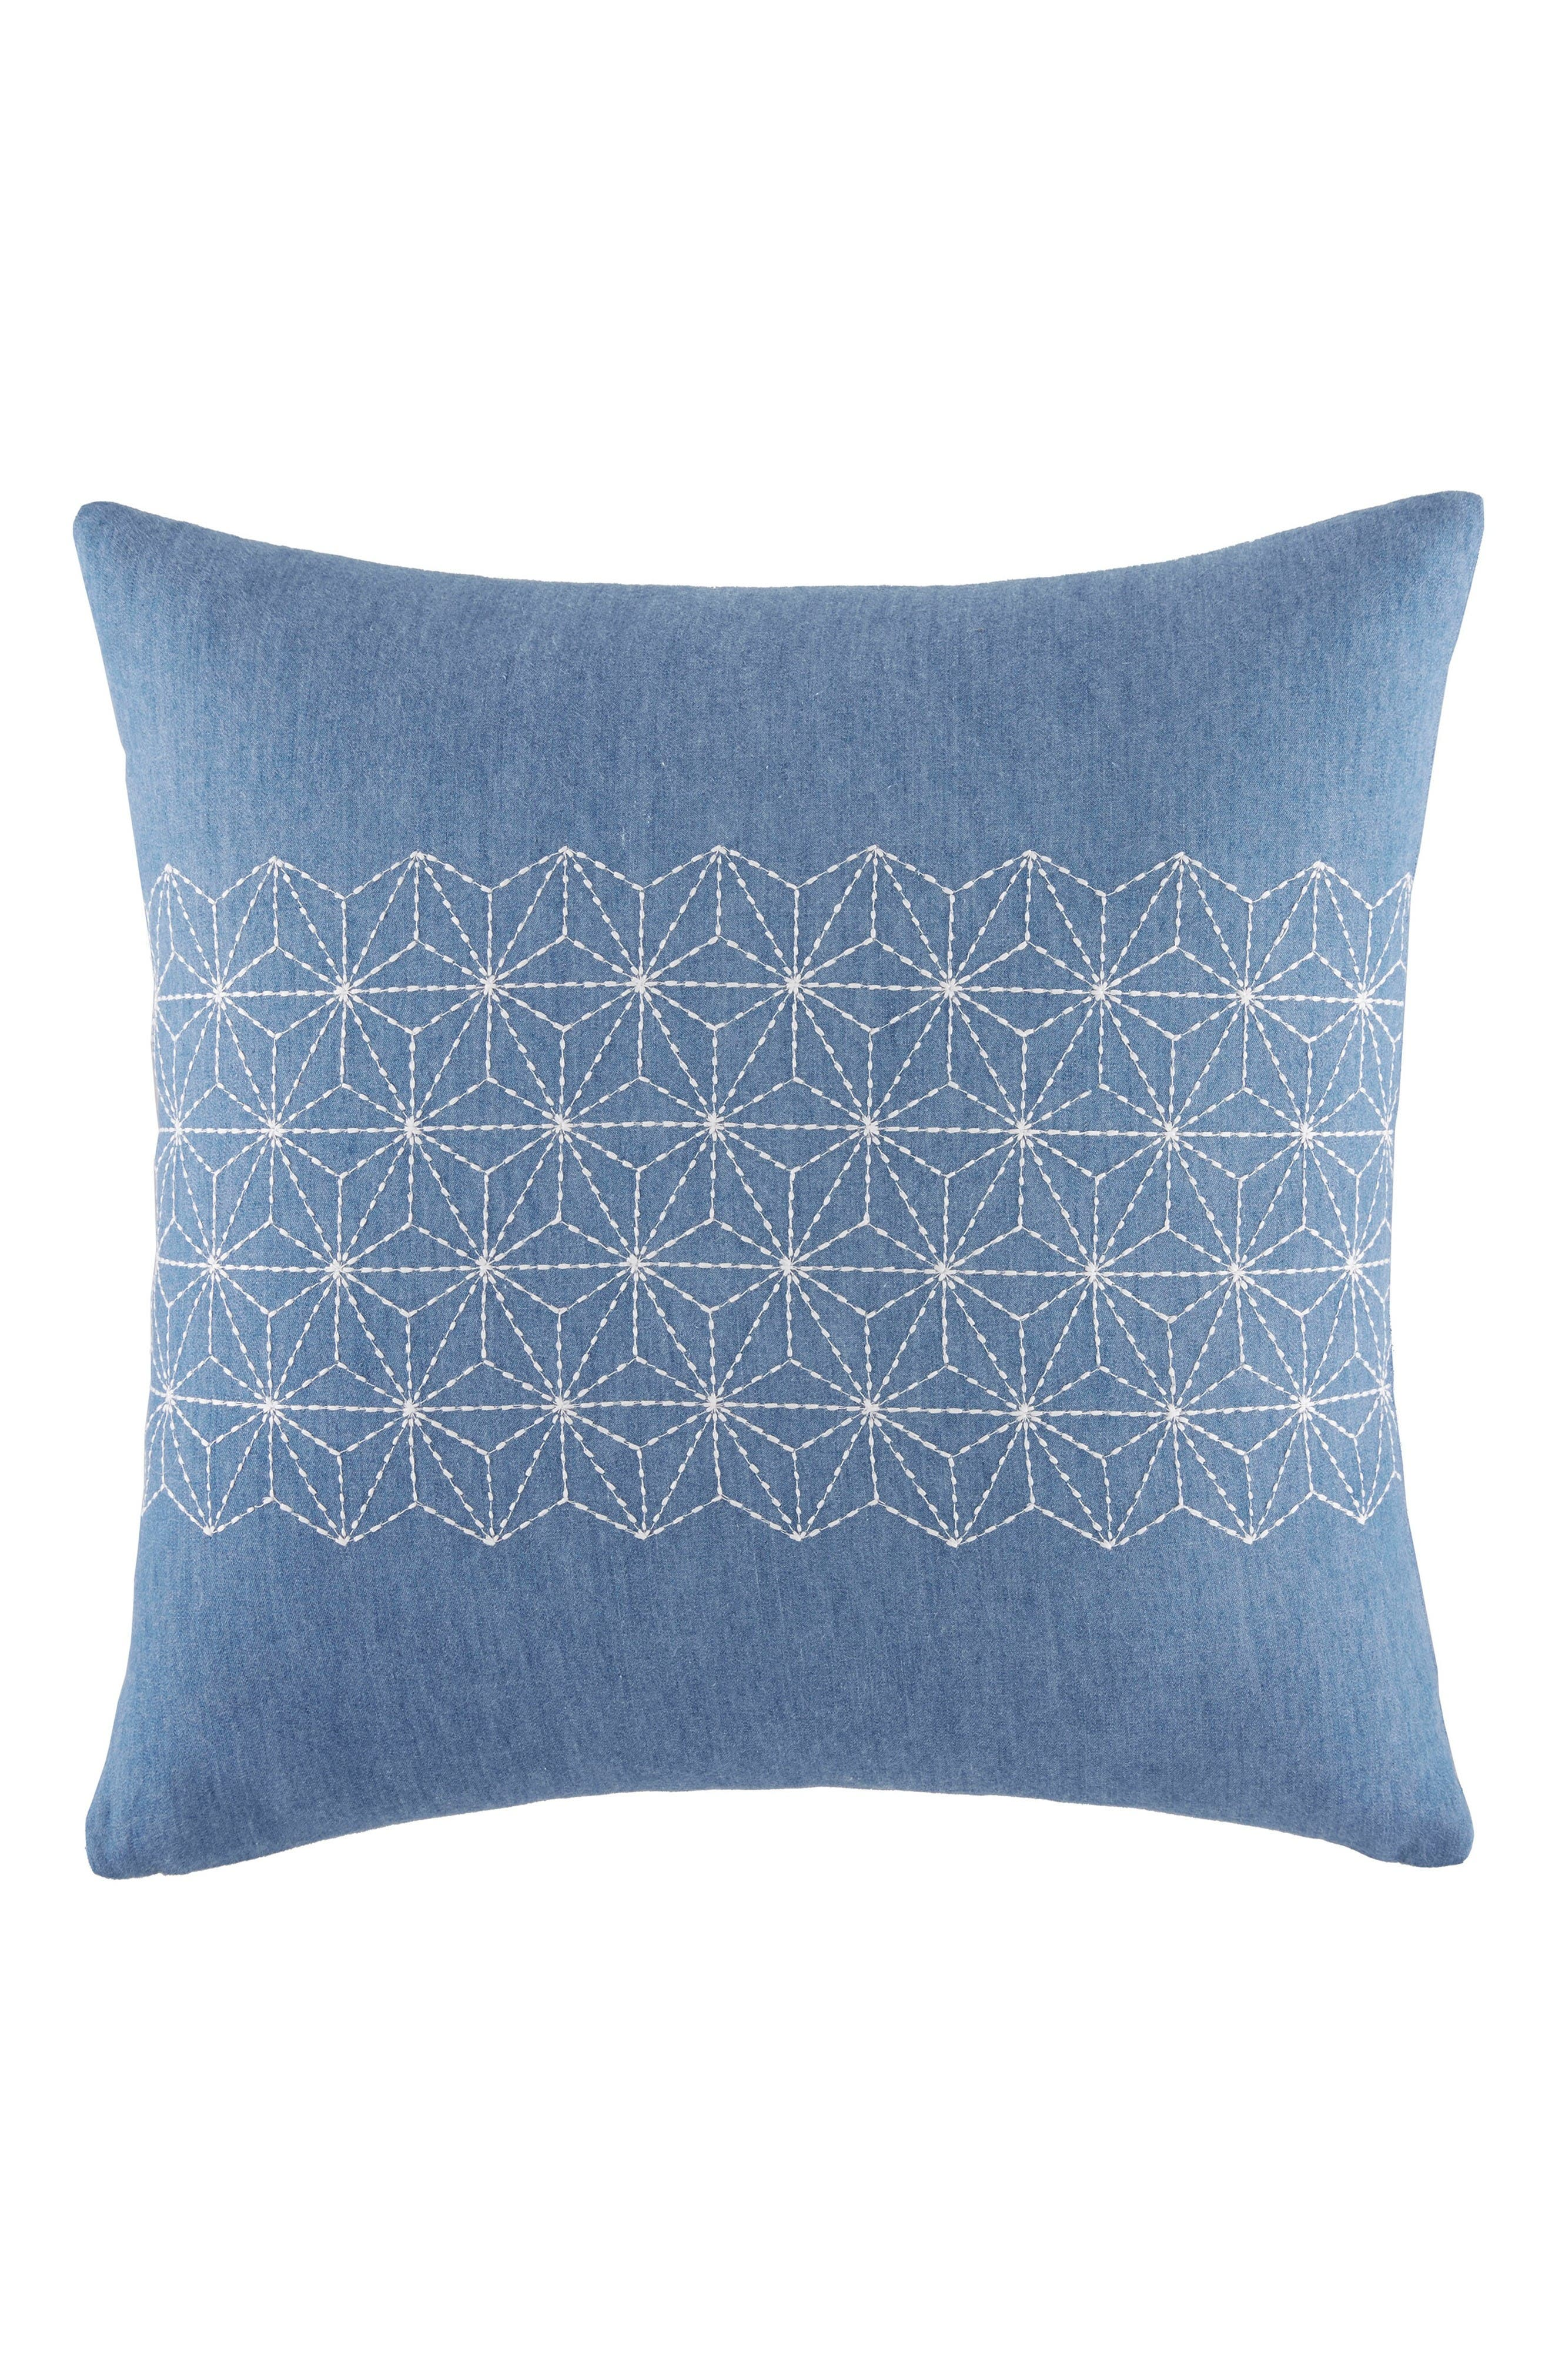 Tommy Hilfiger Geo Stitched Accent Pillow